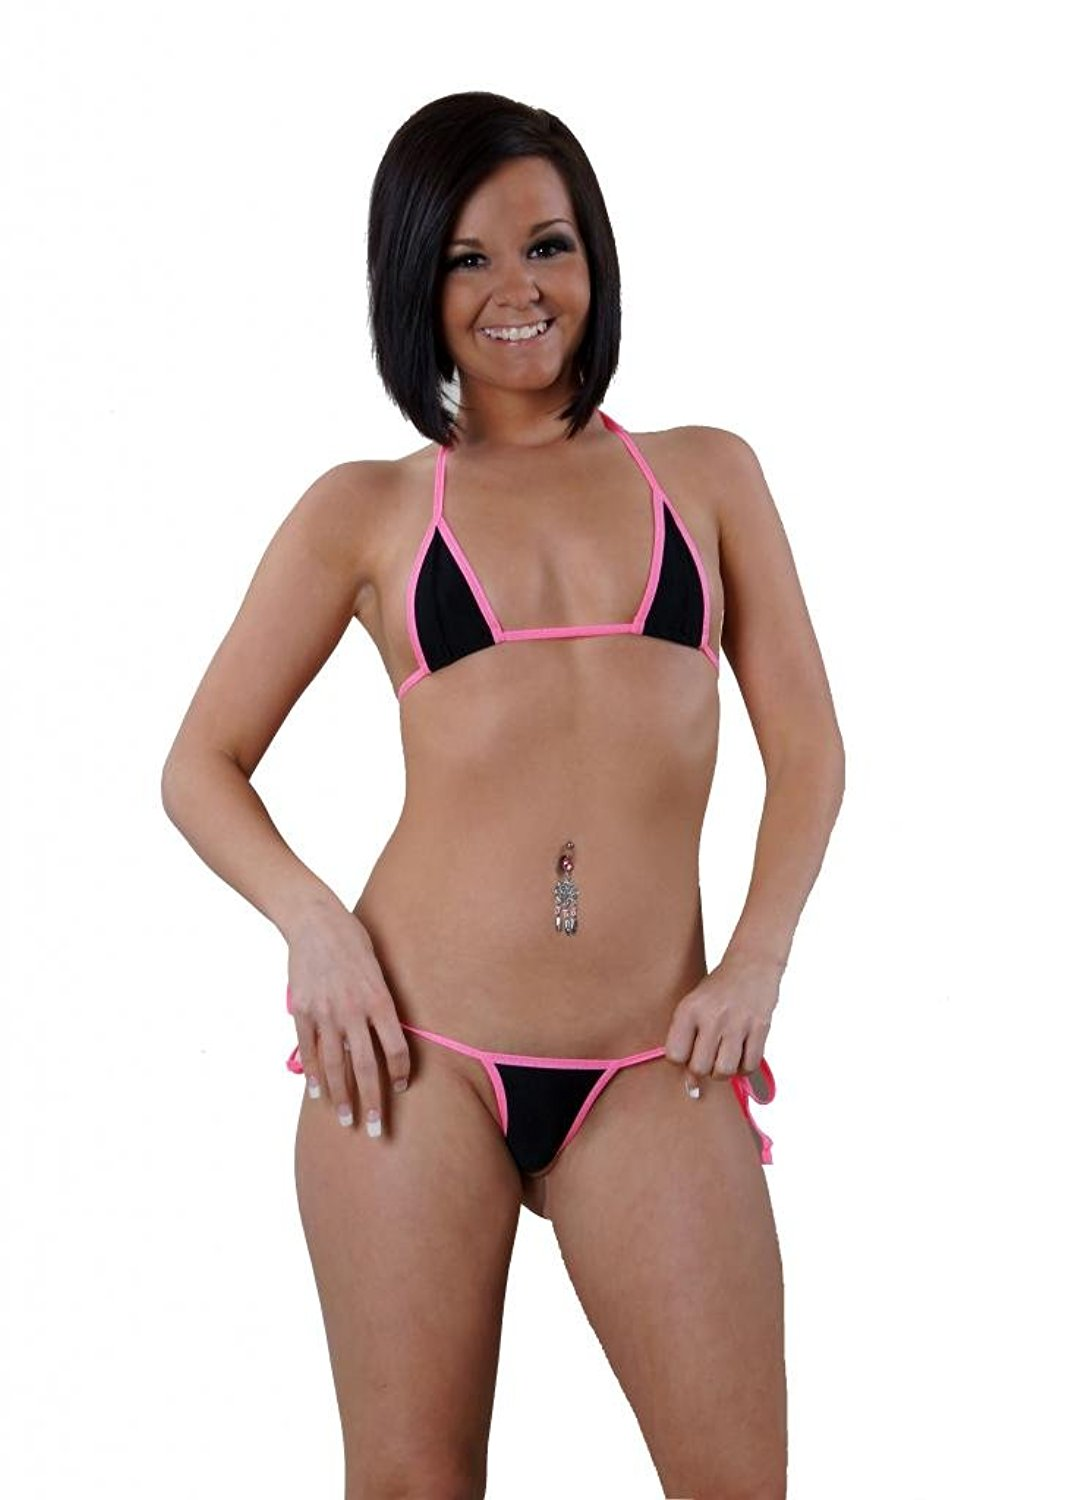 e84443f846 Solid Black w/ Neon Pink Sexy Side Tie Thong Bikini 2 Piece Micro Made in